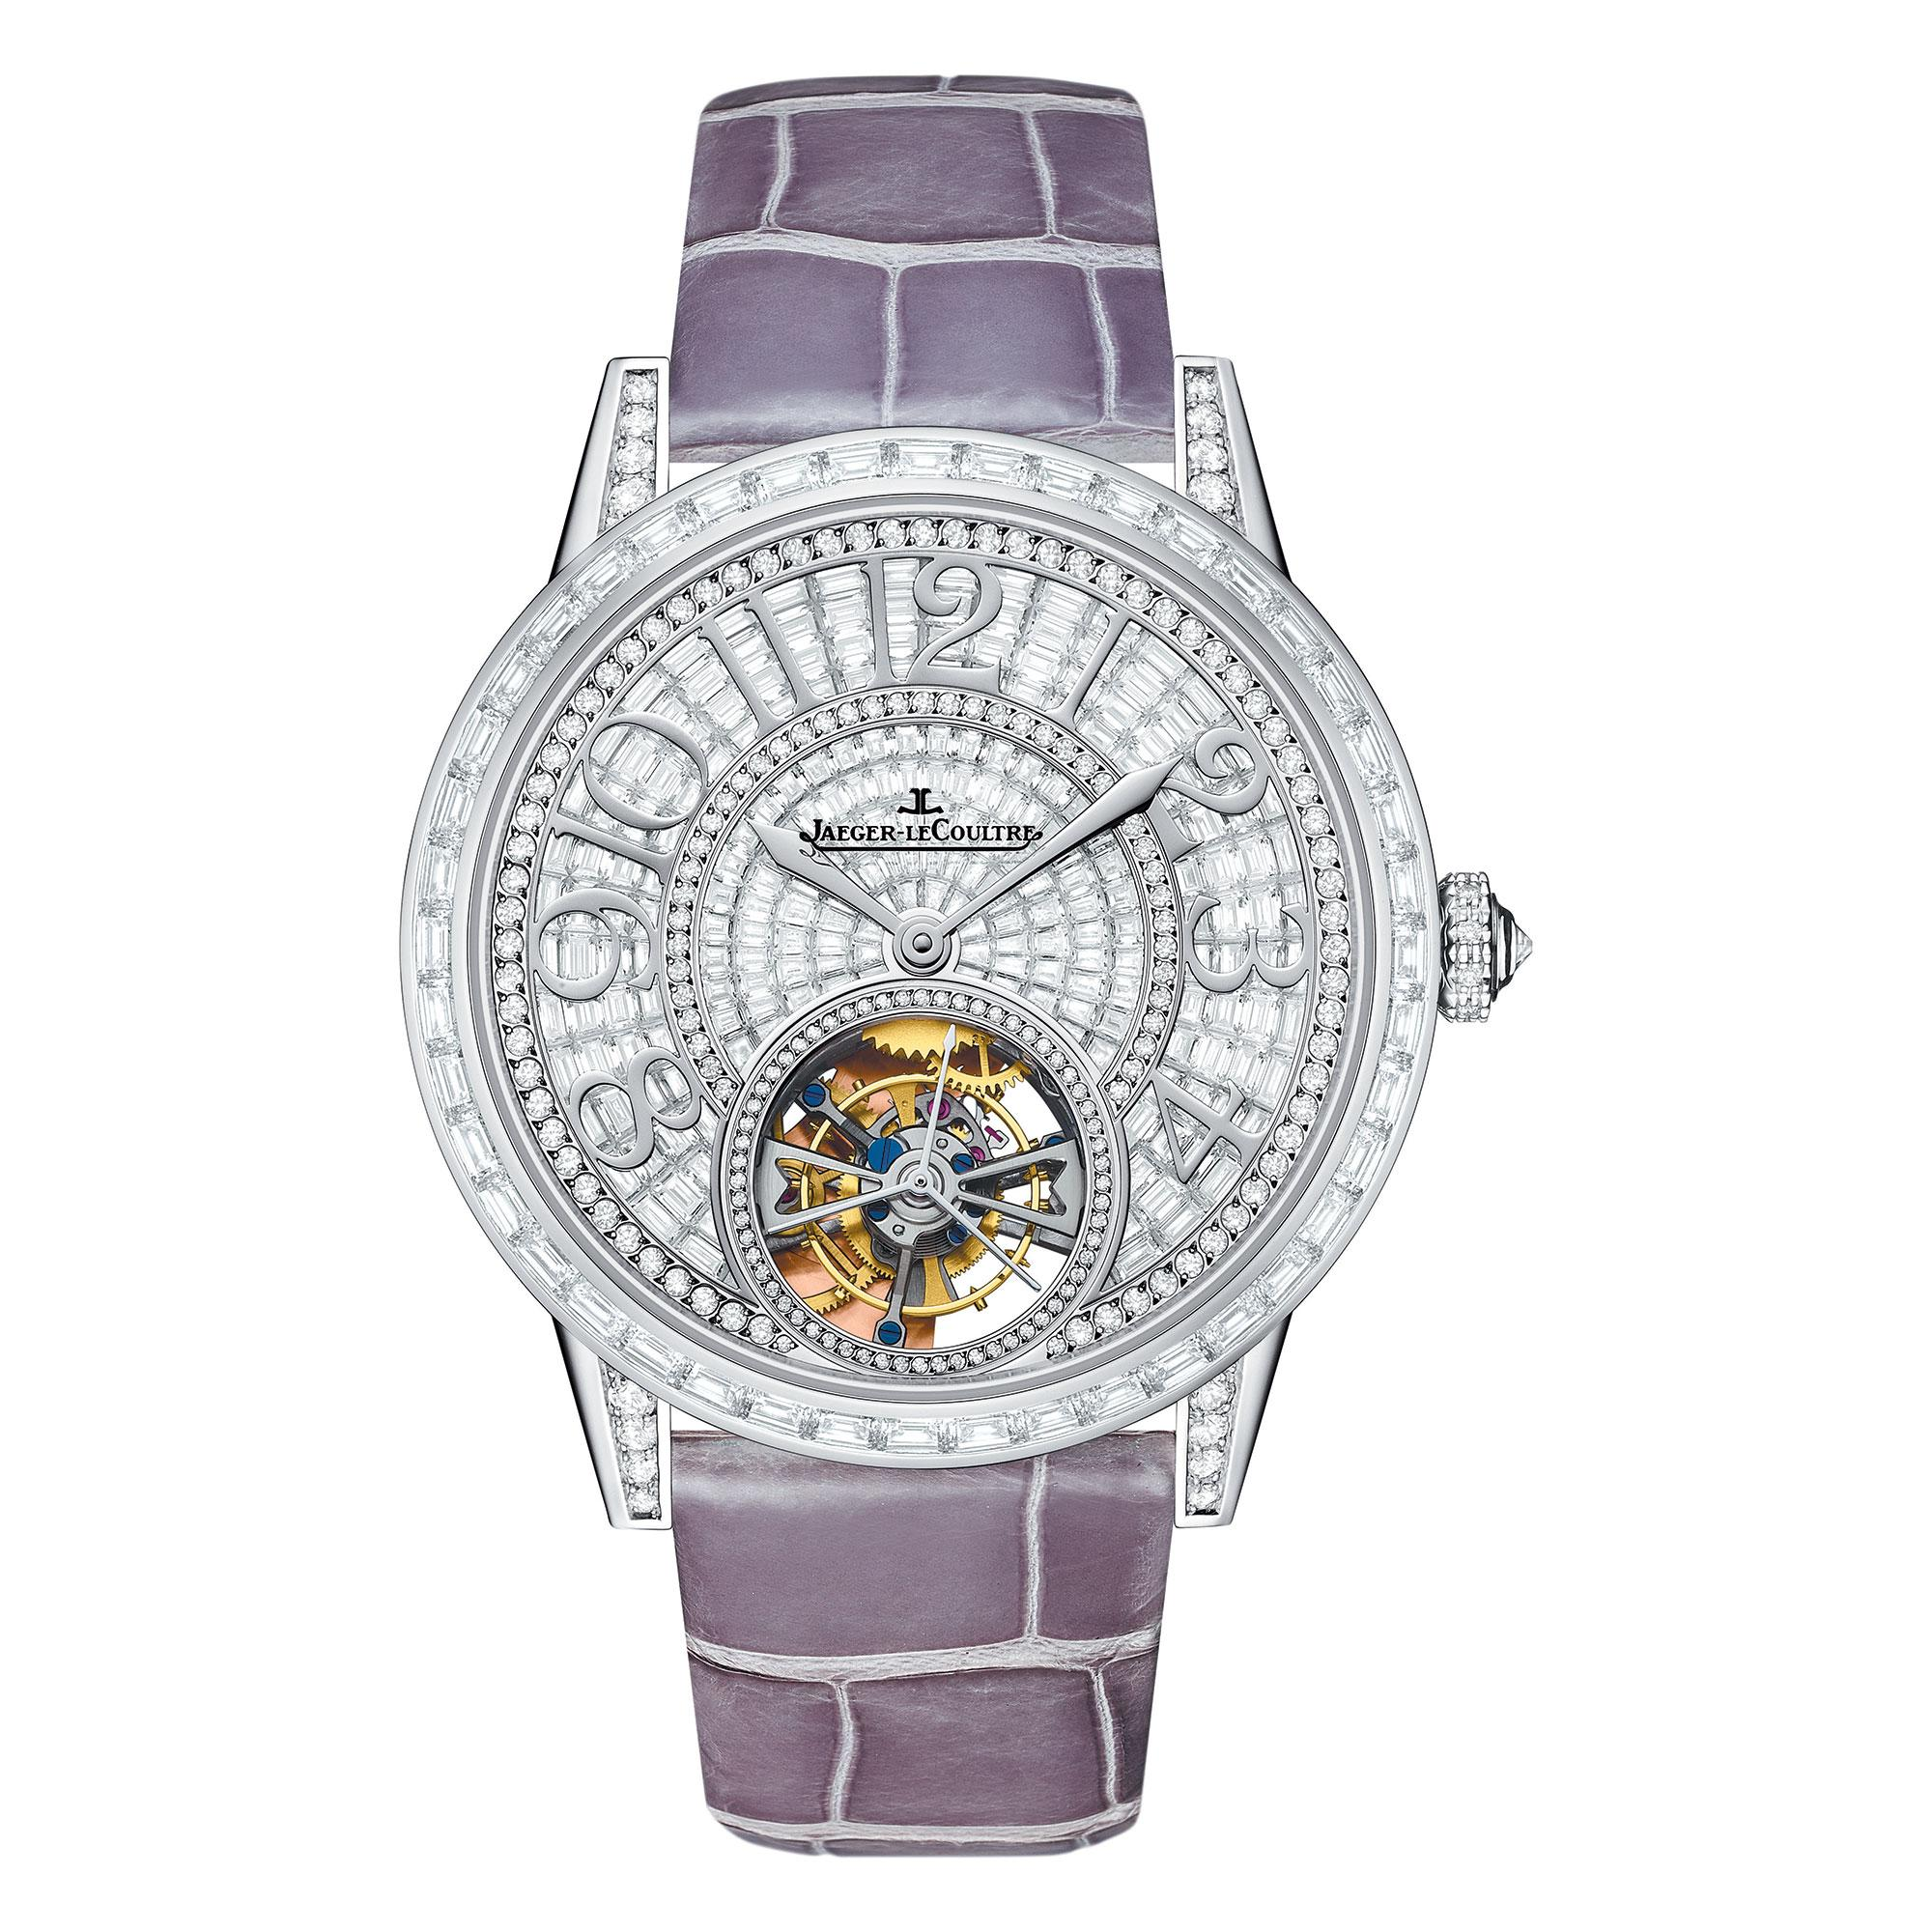 As these cool alligator watches prove, gray is the new black: http://t.co/FVYjK9OdMv http://t.co/8Oe8wmUpdu